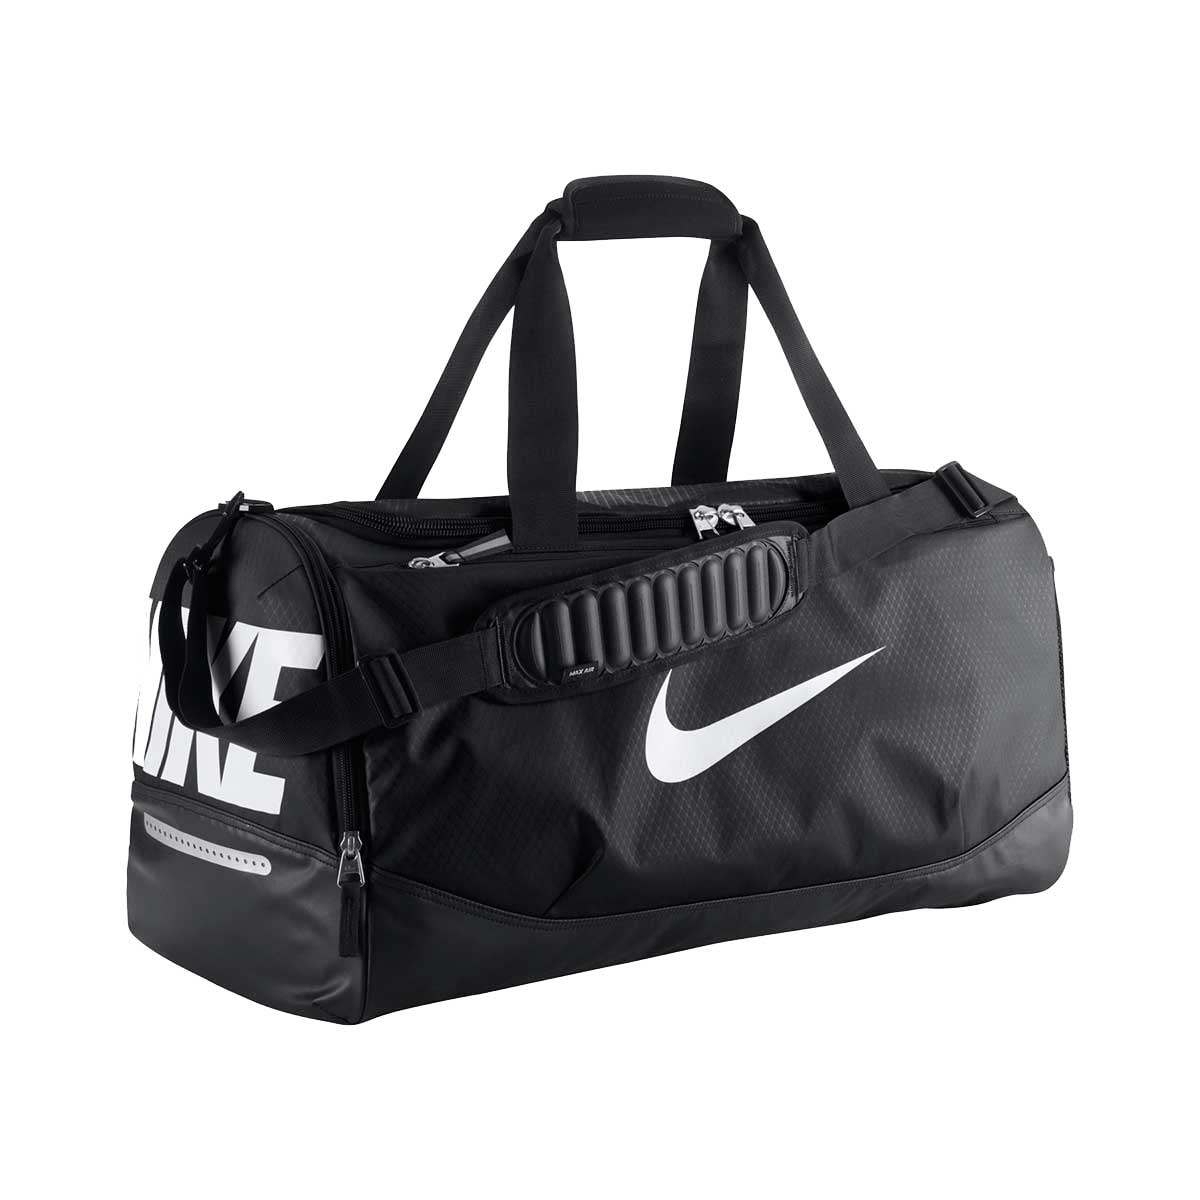 0aa6e1e6c5 Buy Nike Team Training Max Air Medium Bag Online India